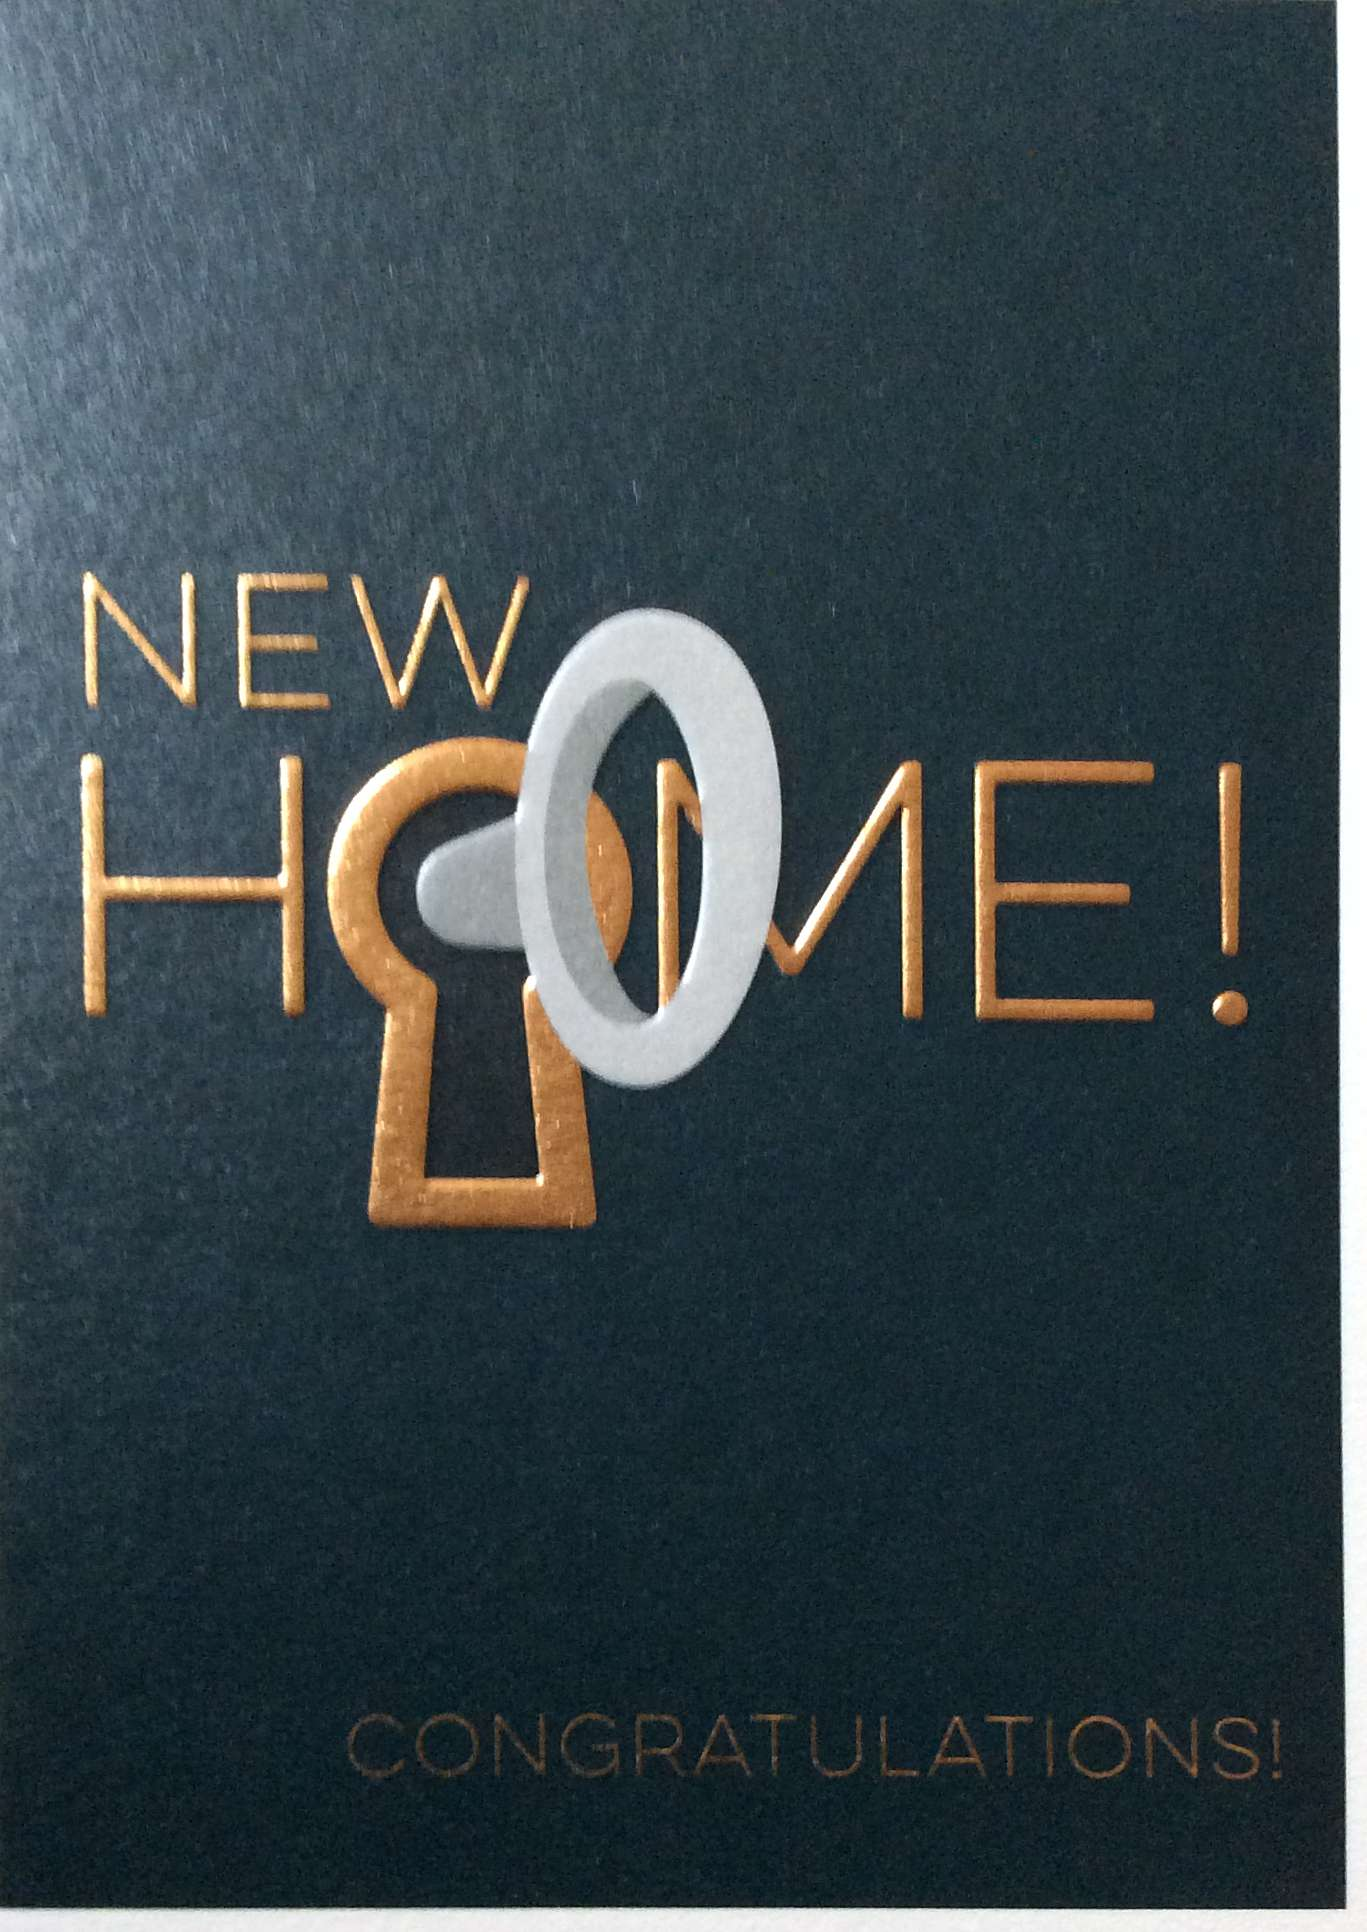 New Home congratulations!